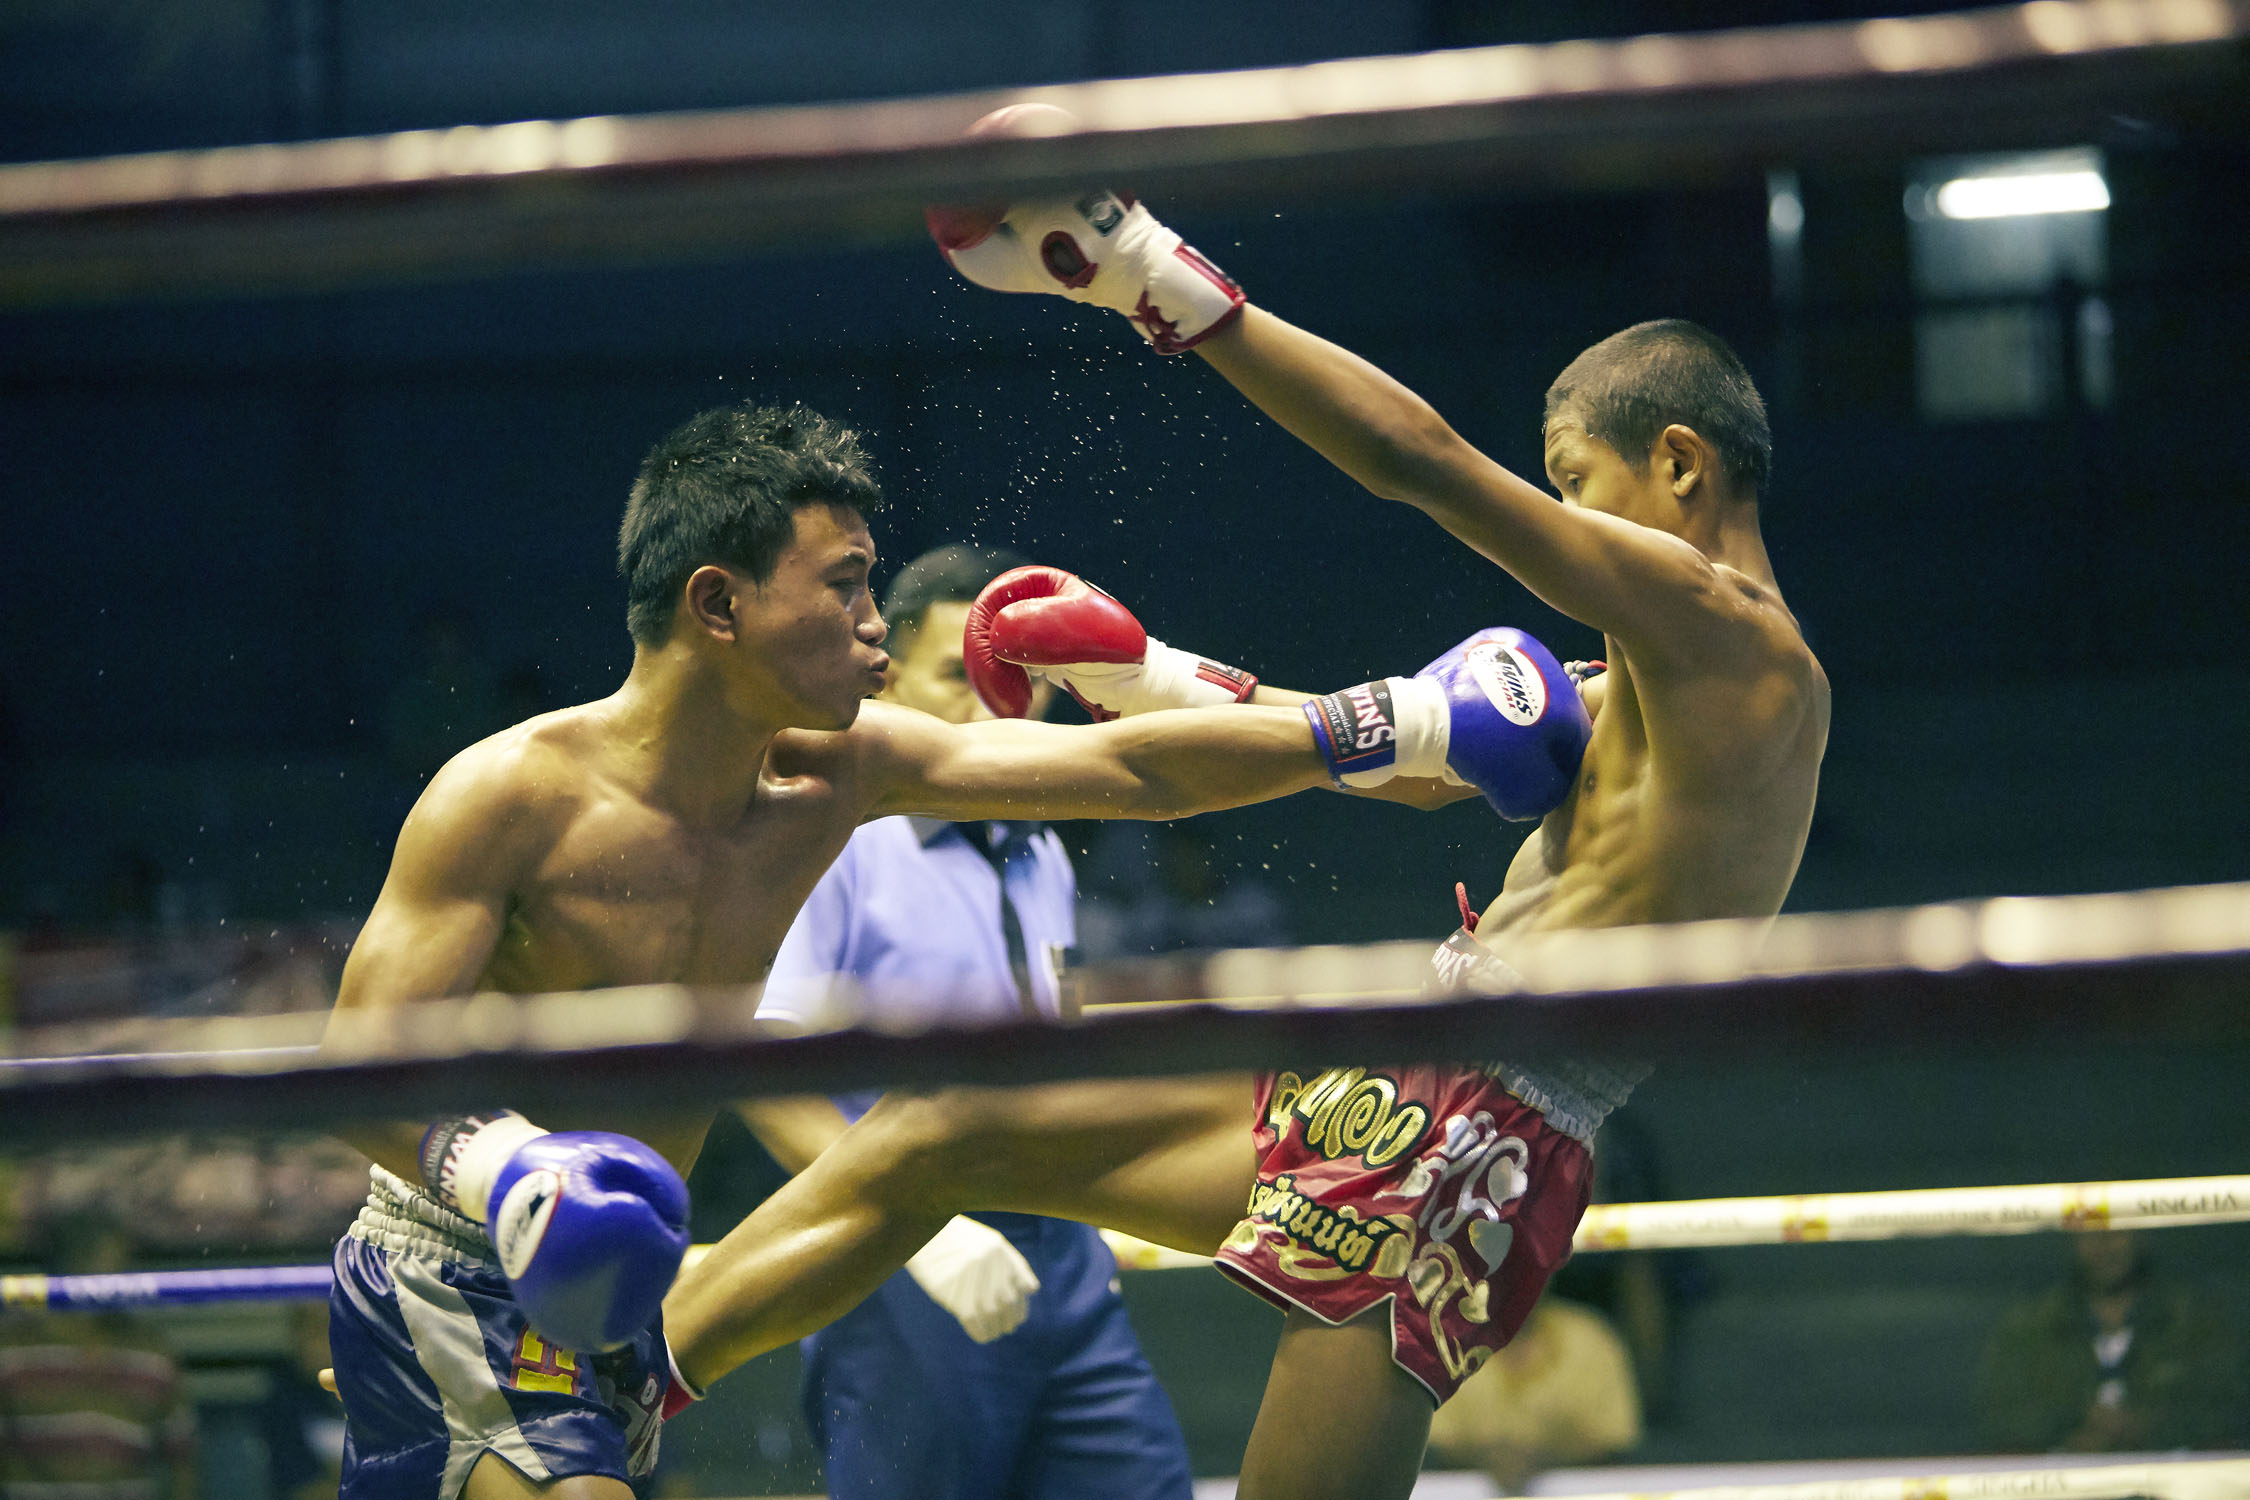 150125_Boxing_Bangkok_Shot02_855_v1